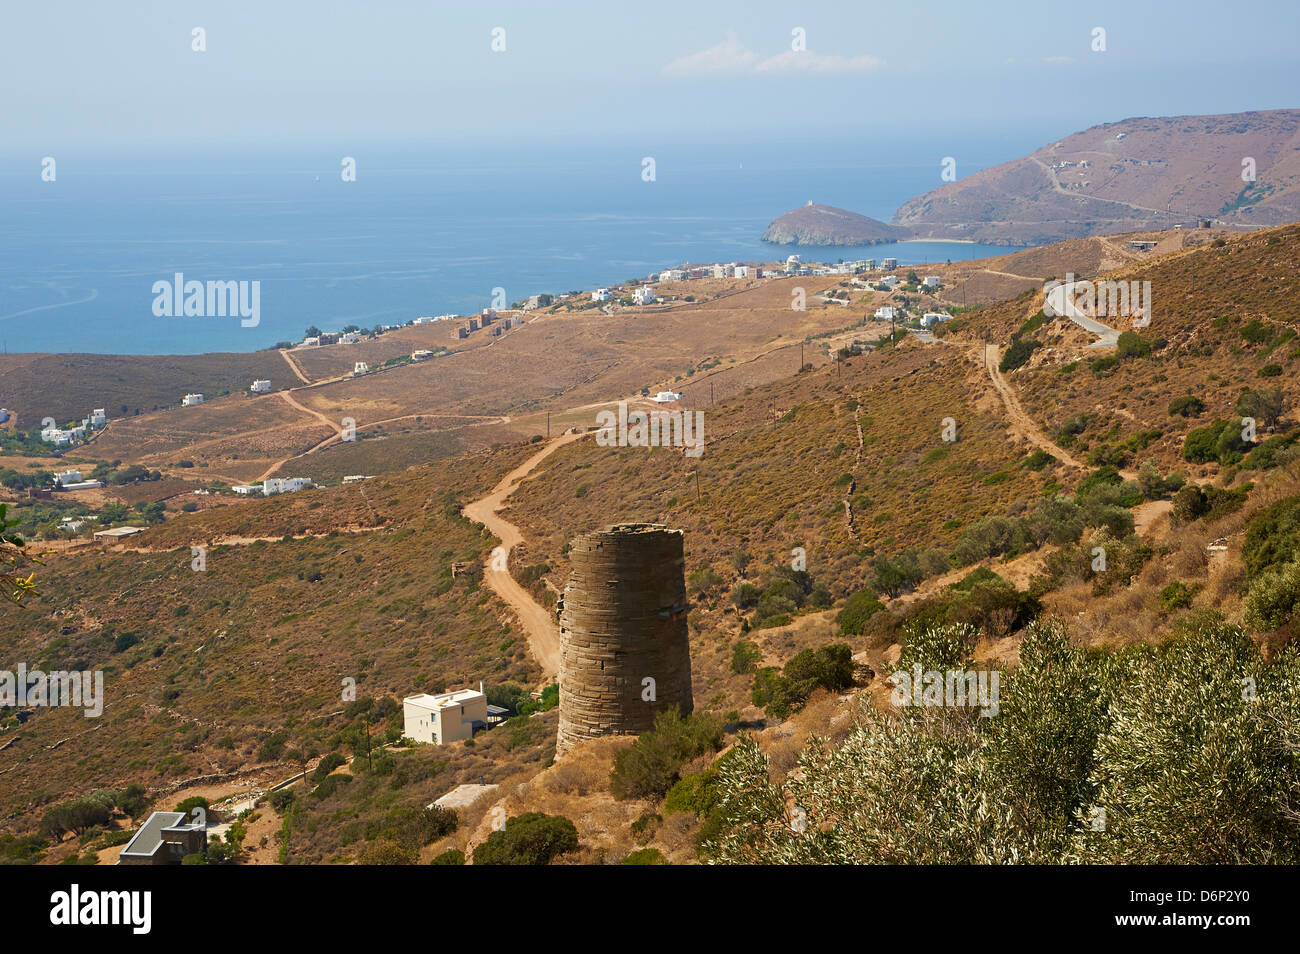 Hellenic tower, Agios Petros, Andros Island, Cyclades, Greek Islands, Greece, Europe - Stock Image